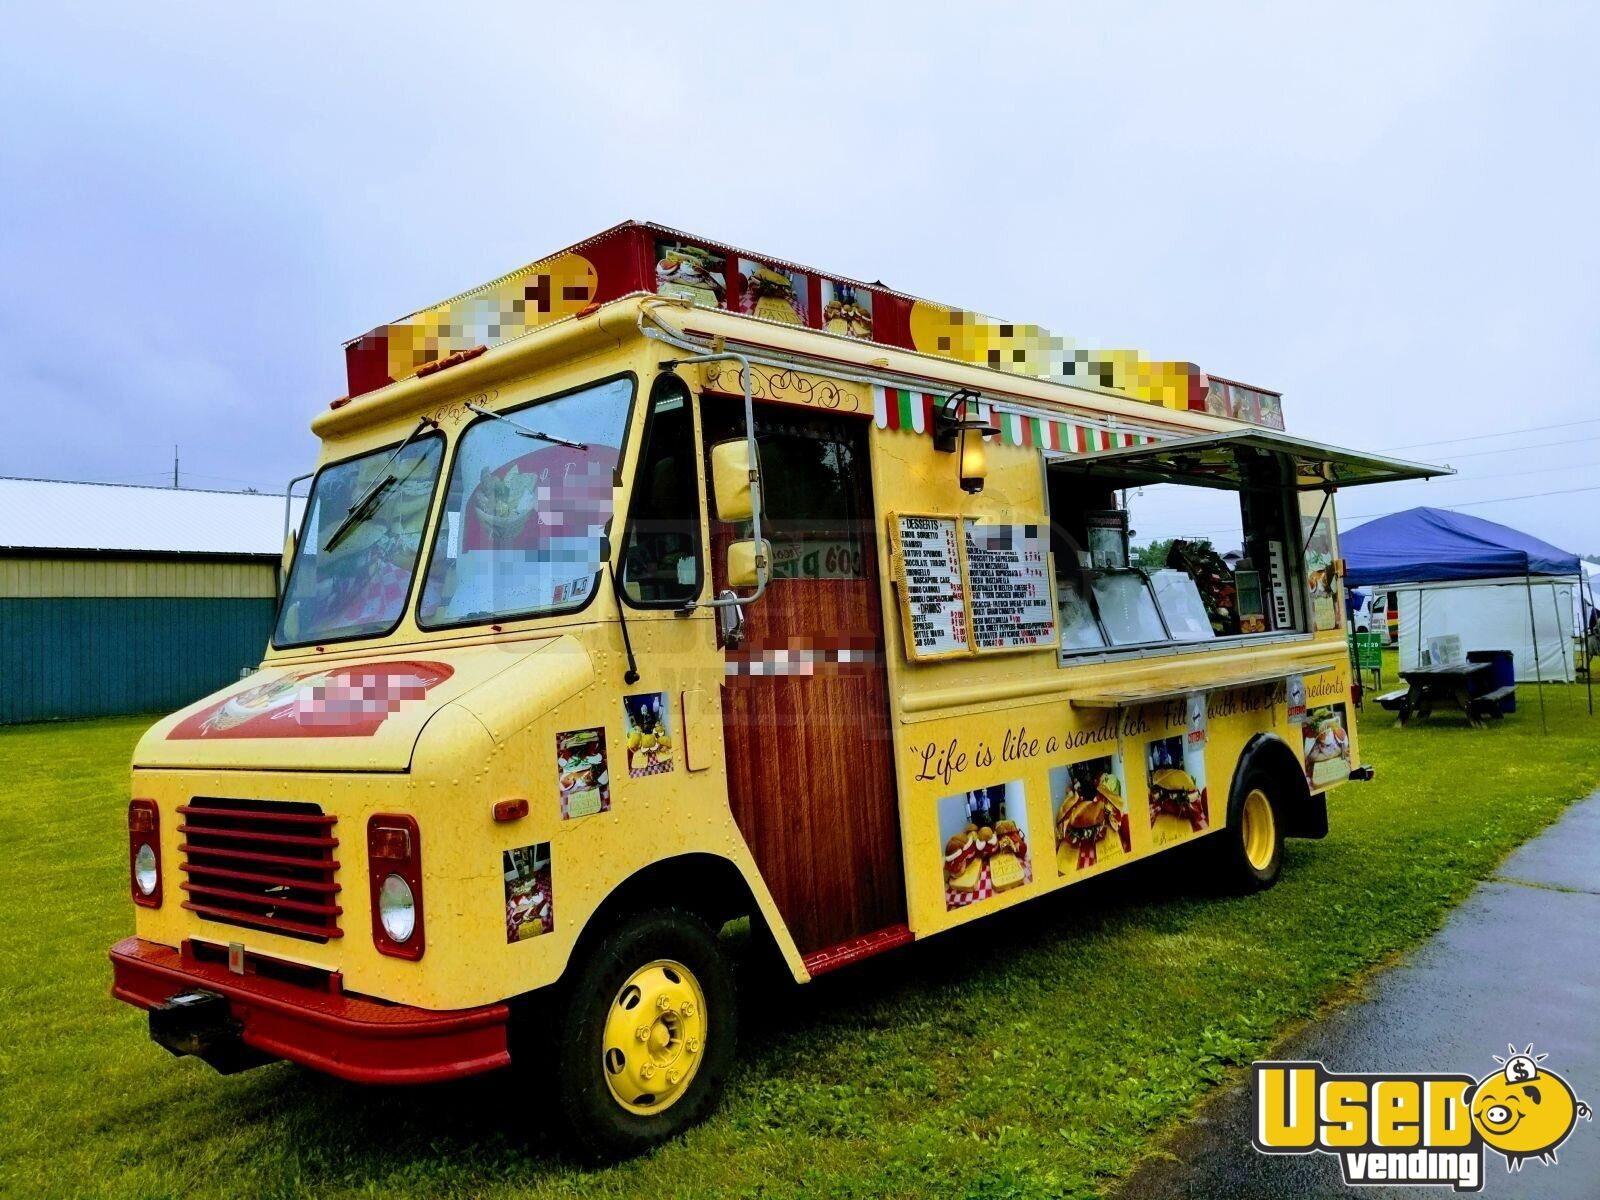 1990 Gmcbox Truck All-purpose Food Truck Refrigerator Pennsylvania Diesel Engine for Sale - 7